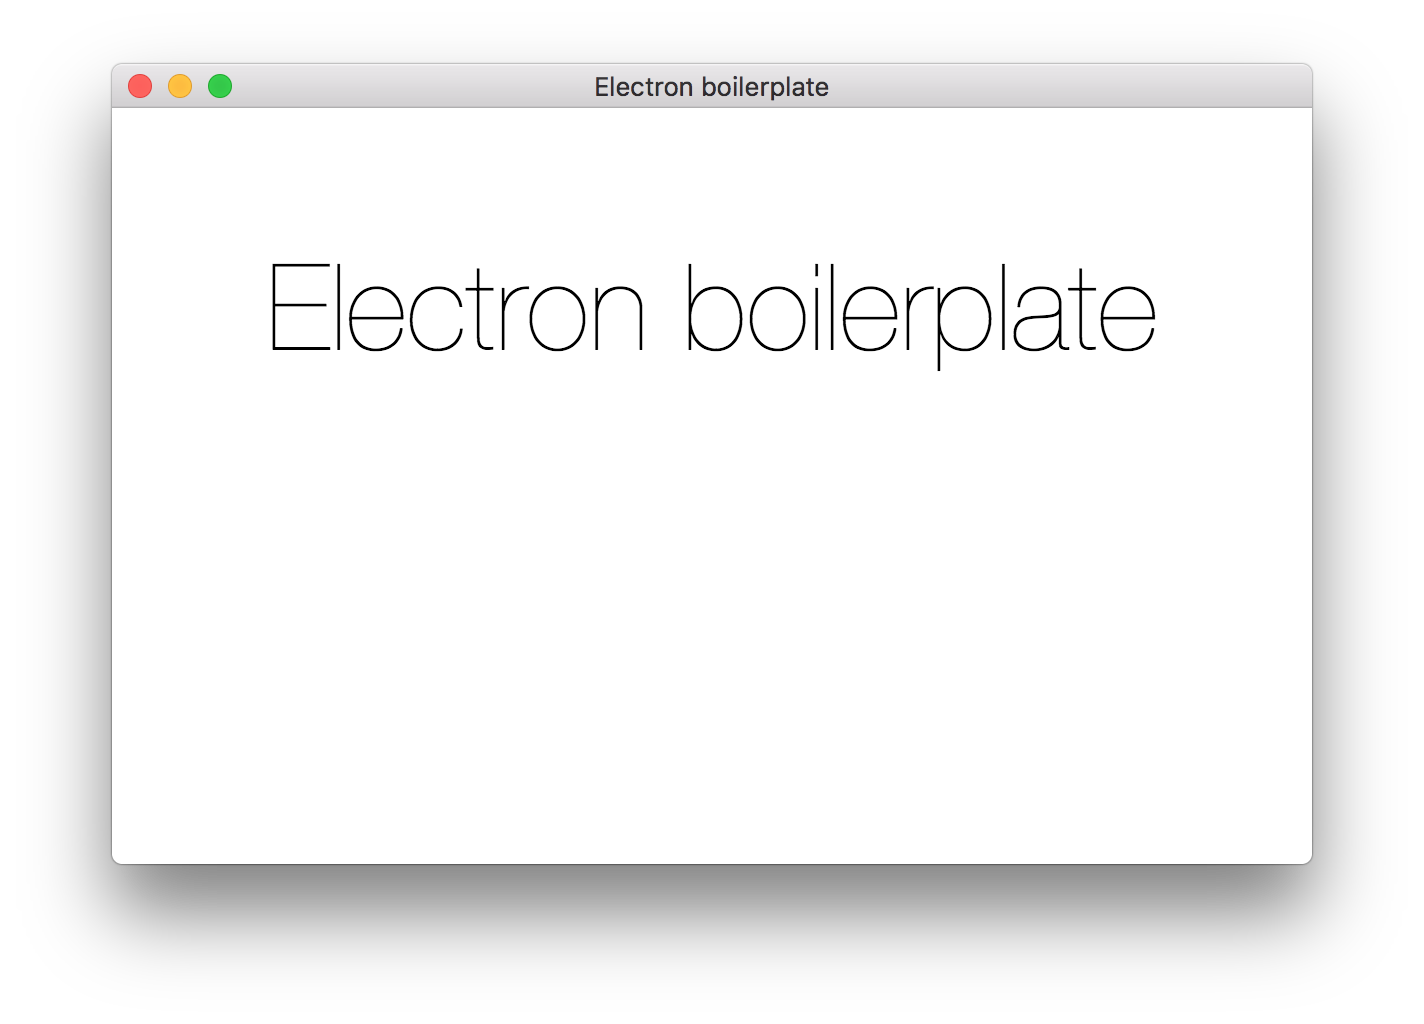 The default screen of a new Electron Boilerplate app